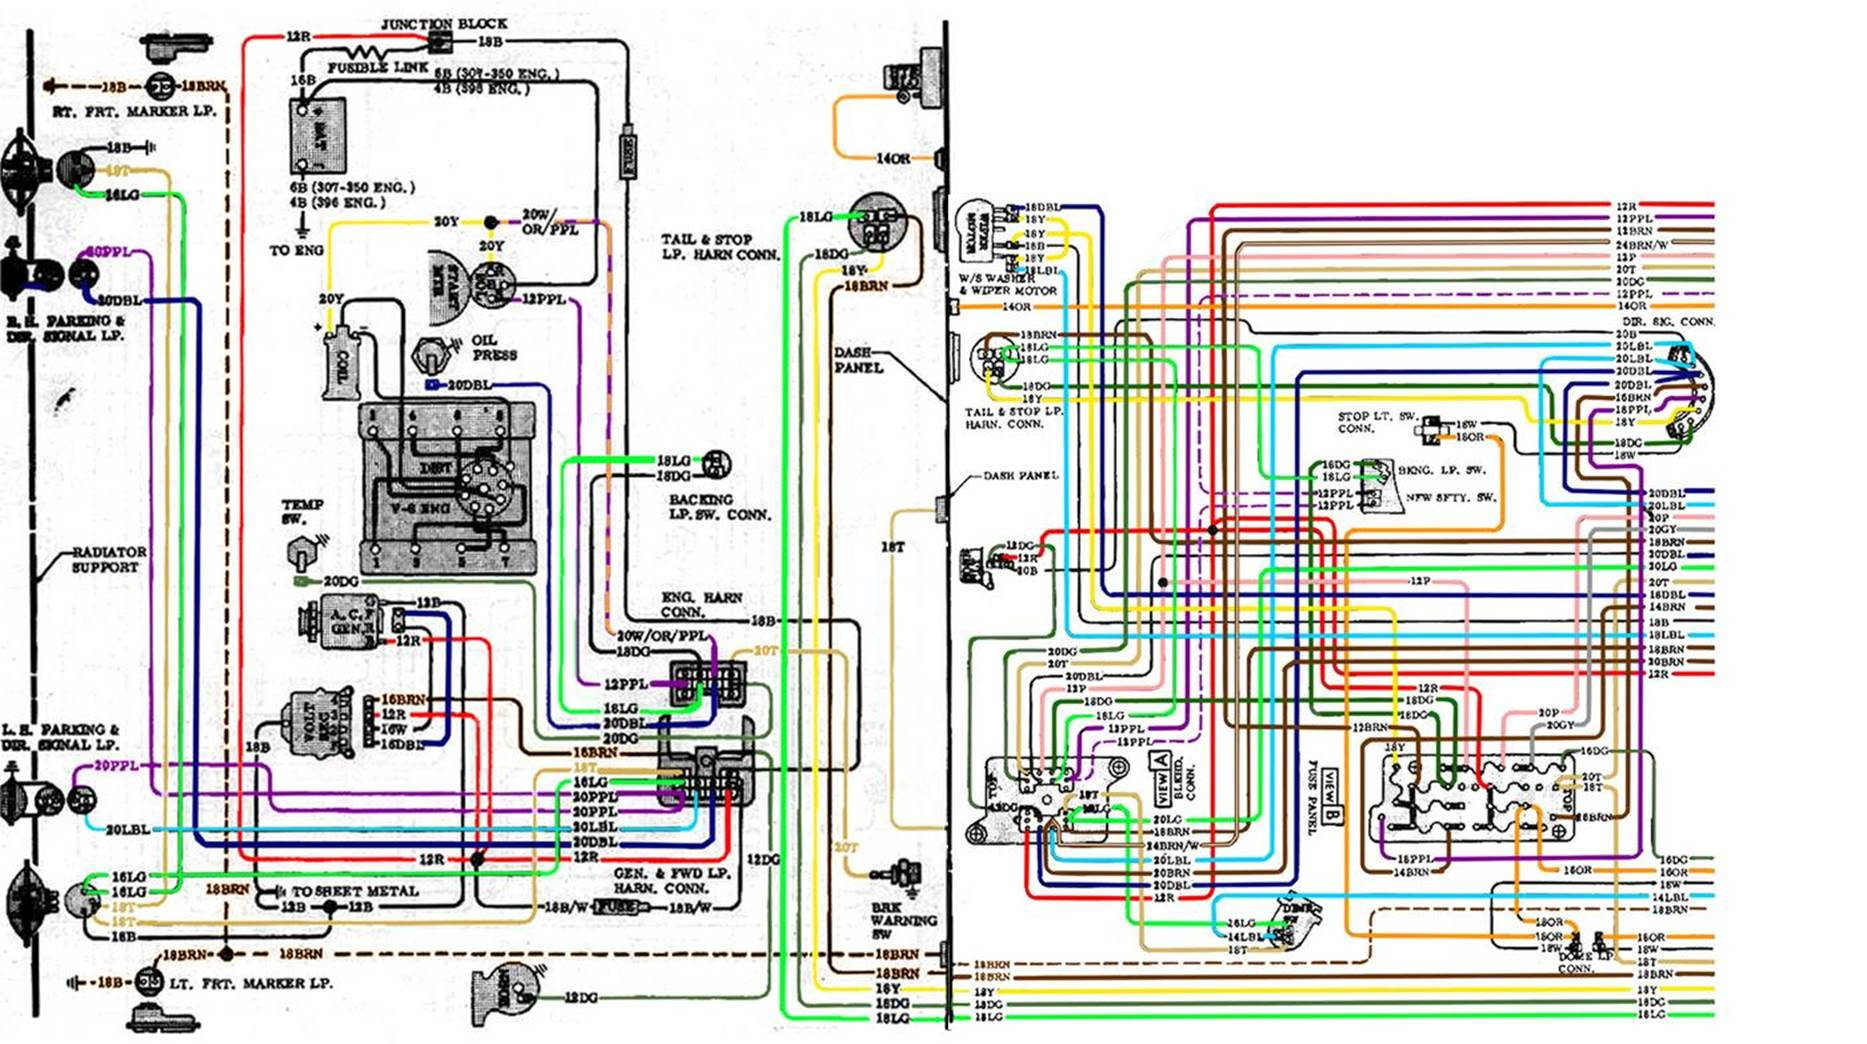 image002 72 c10 wiring diagram chevy truck wiring diagram \u2022 wiring diagrams 1965 c10 wiring harness at eliteediting.co